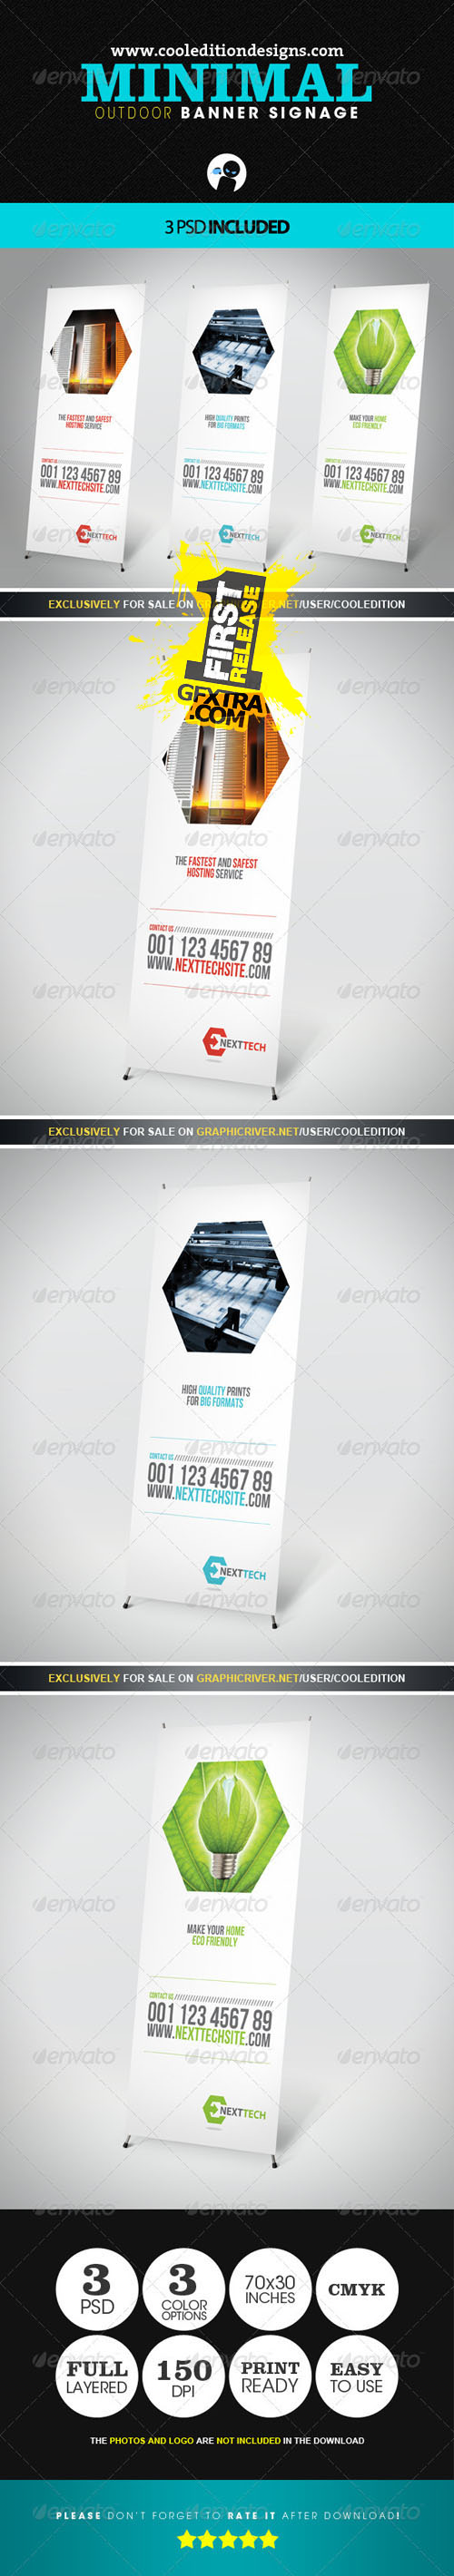 GraphicRiver: Minimal Outdoor Banner Signage